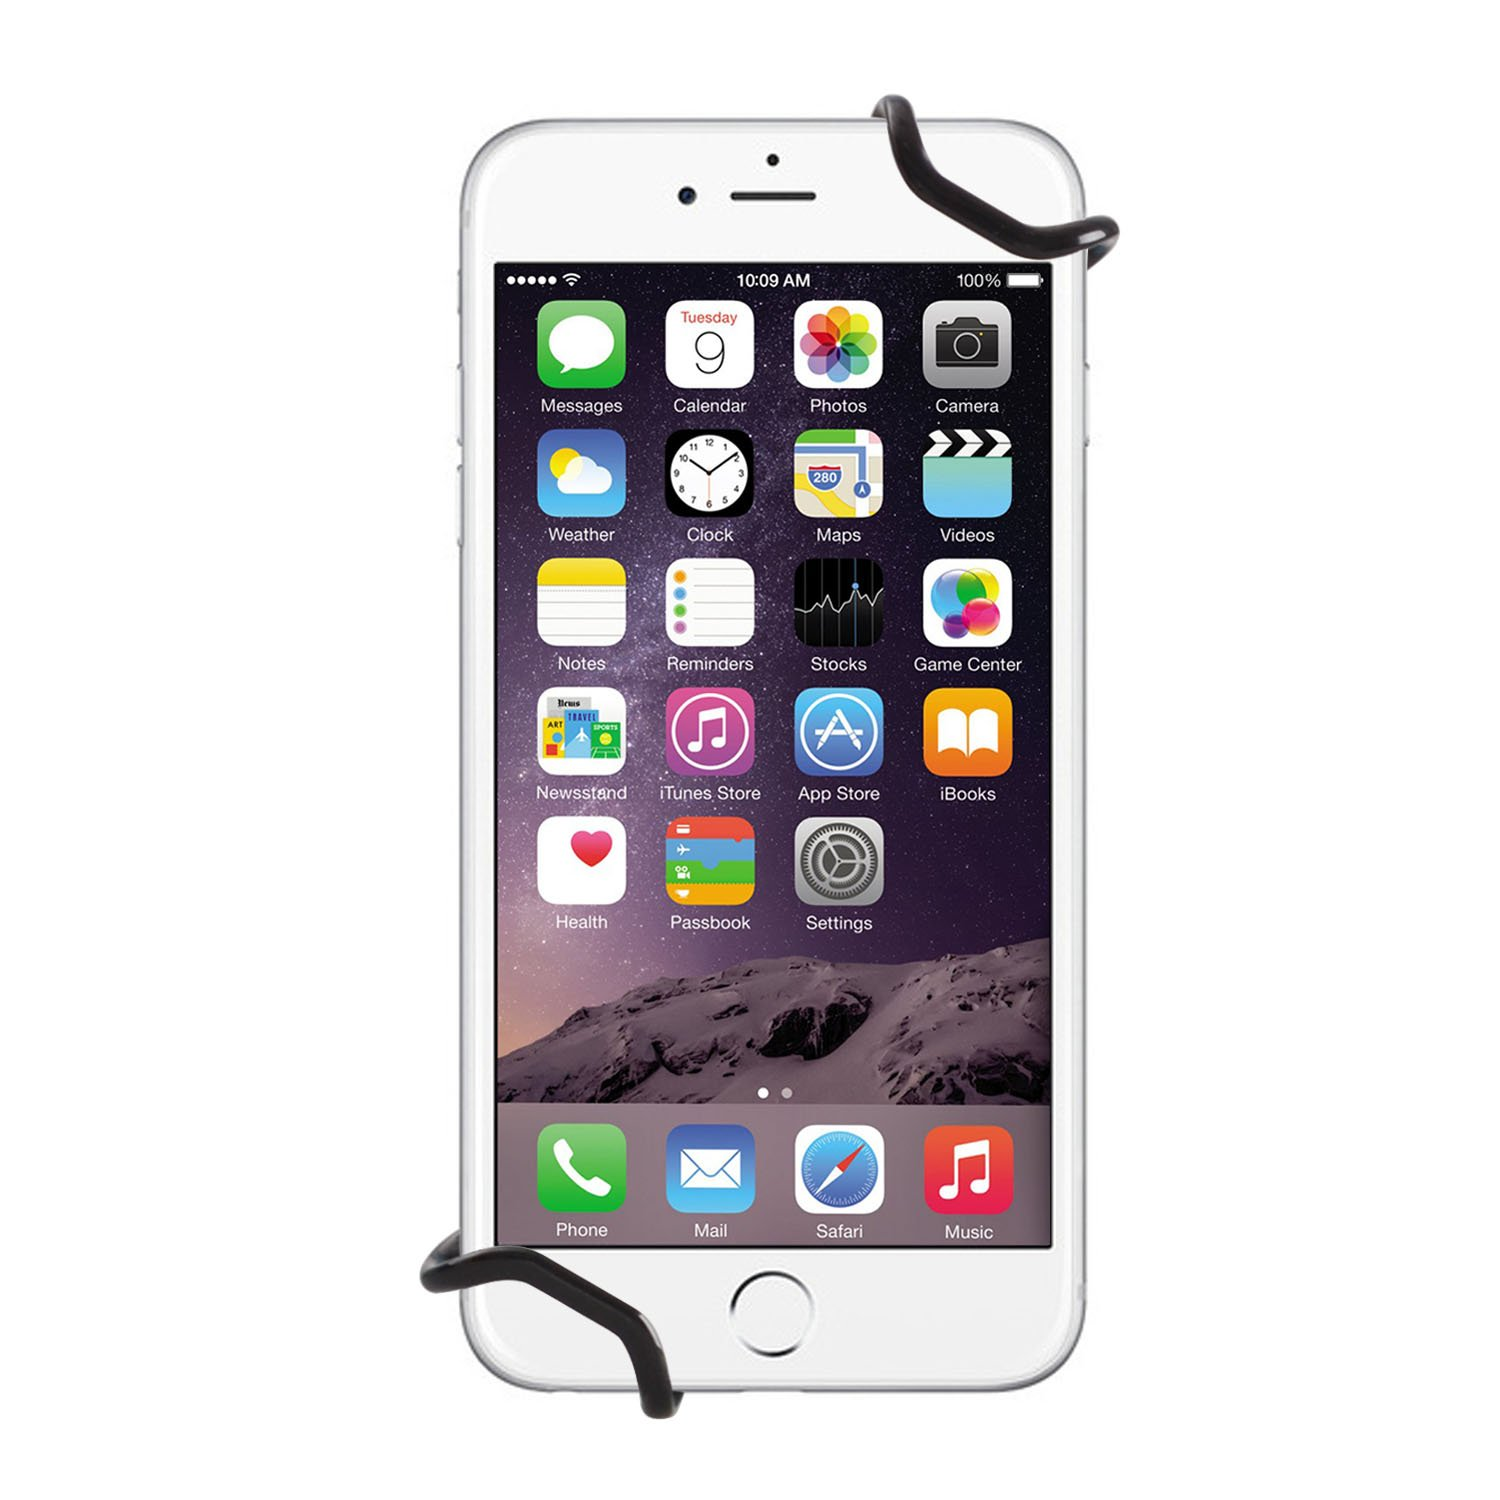 WANPOOL Universal Non-slip Hand Strap Holder Support with Adjustable Leather Belt Stand Plus // 7 Plus for use with iPhone 6 // 6S Samsung Galaxy S4// S5// S7 and More WP-STANDHOOK5 iPhone SE HUAWEI Mate 9